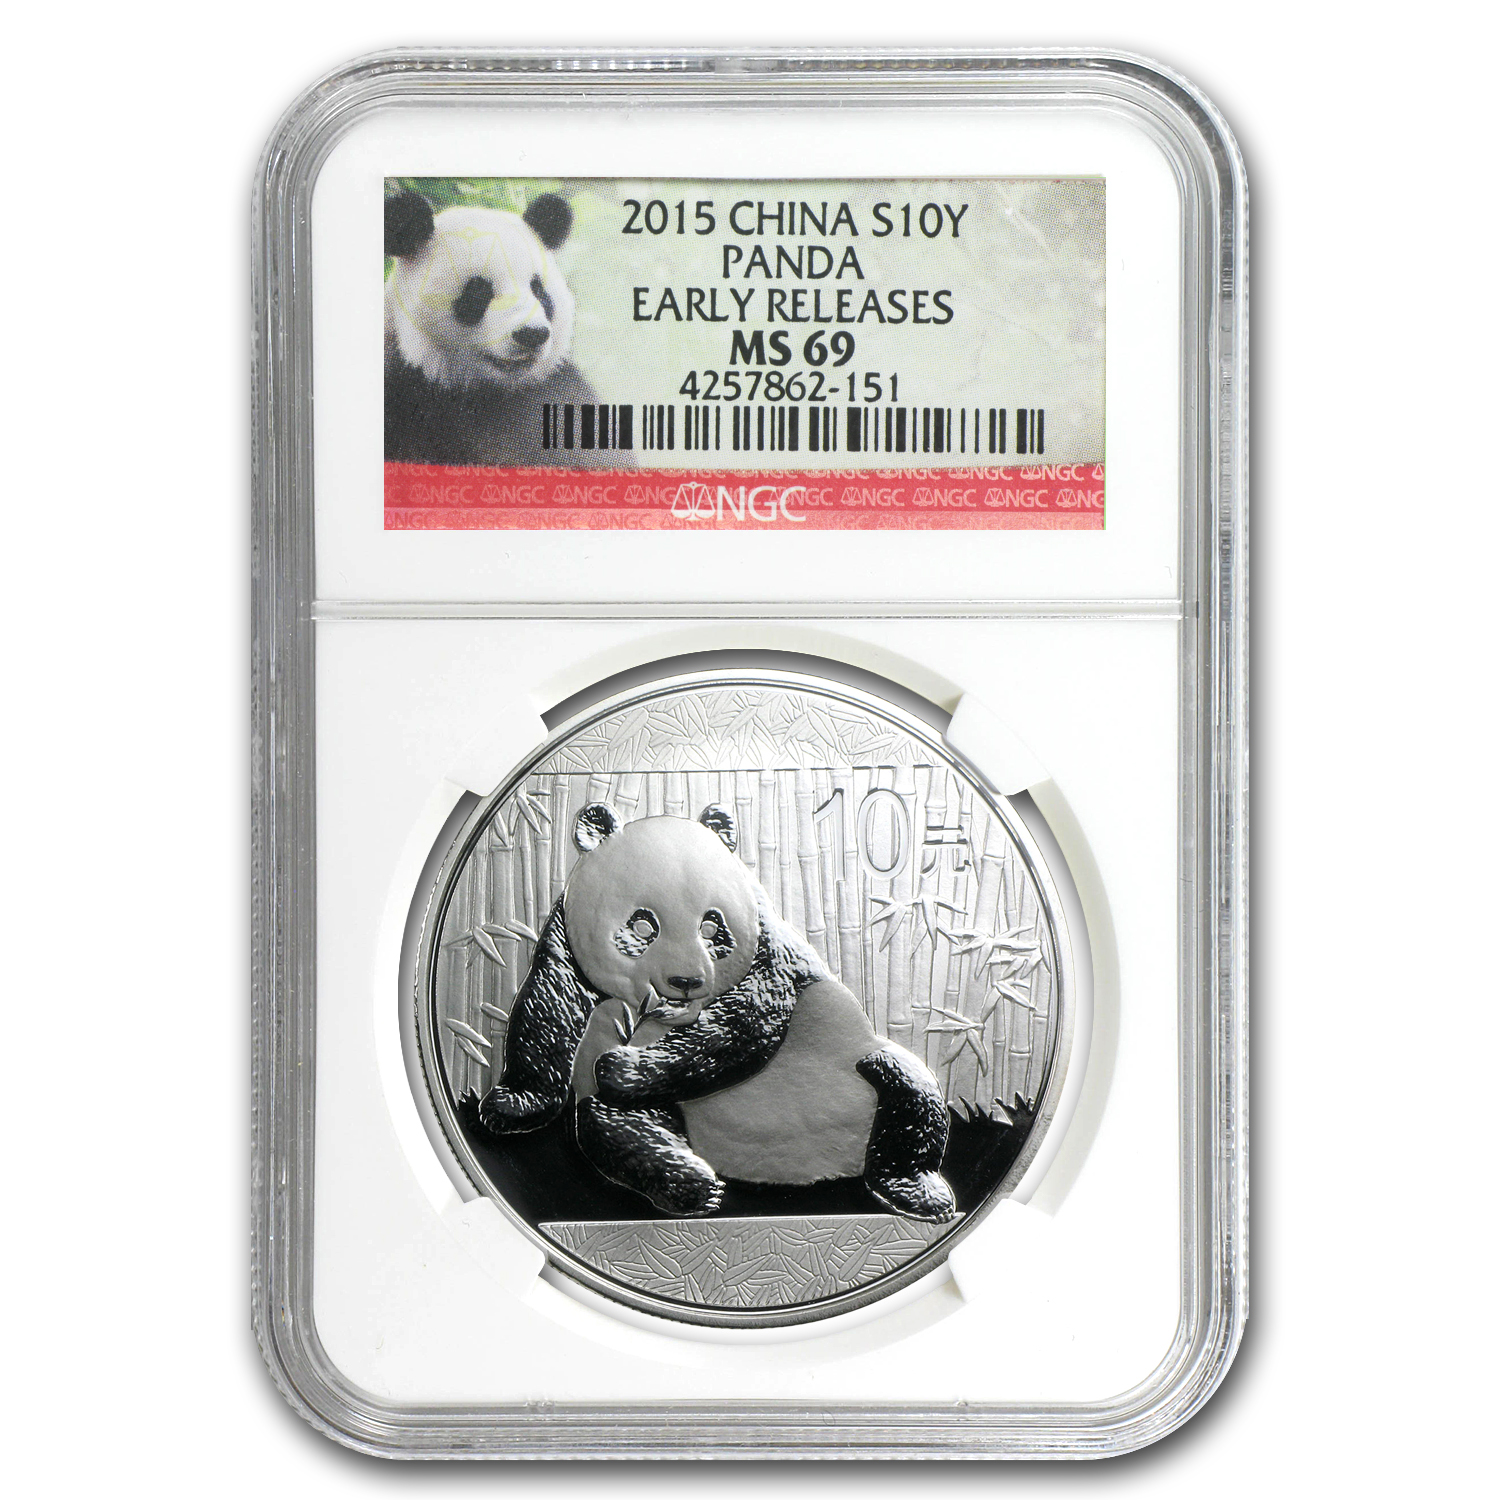 2015 China 1 oz Silver Panda MS-69 NGC (Early Releases)